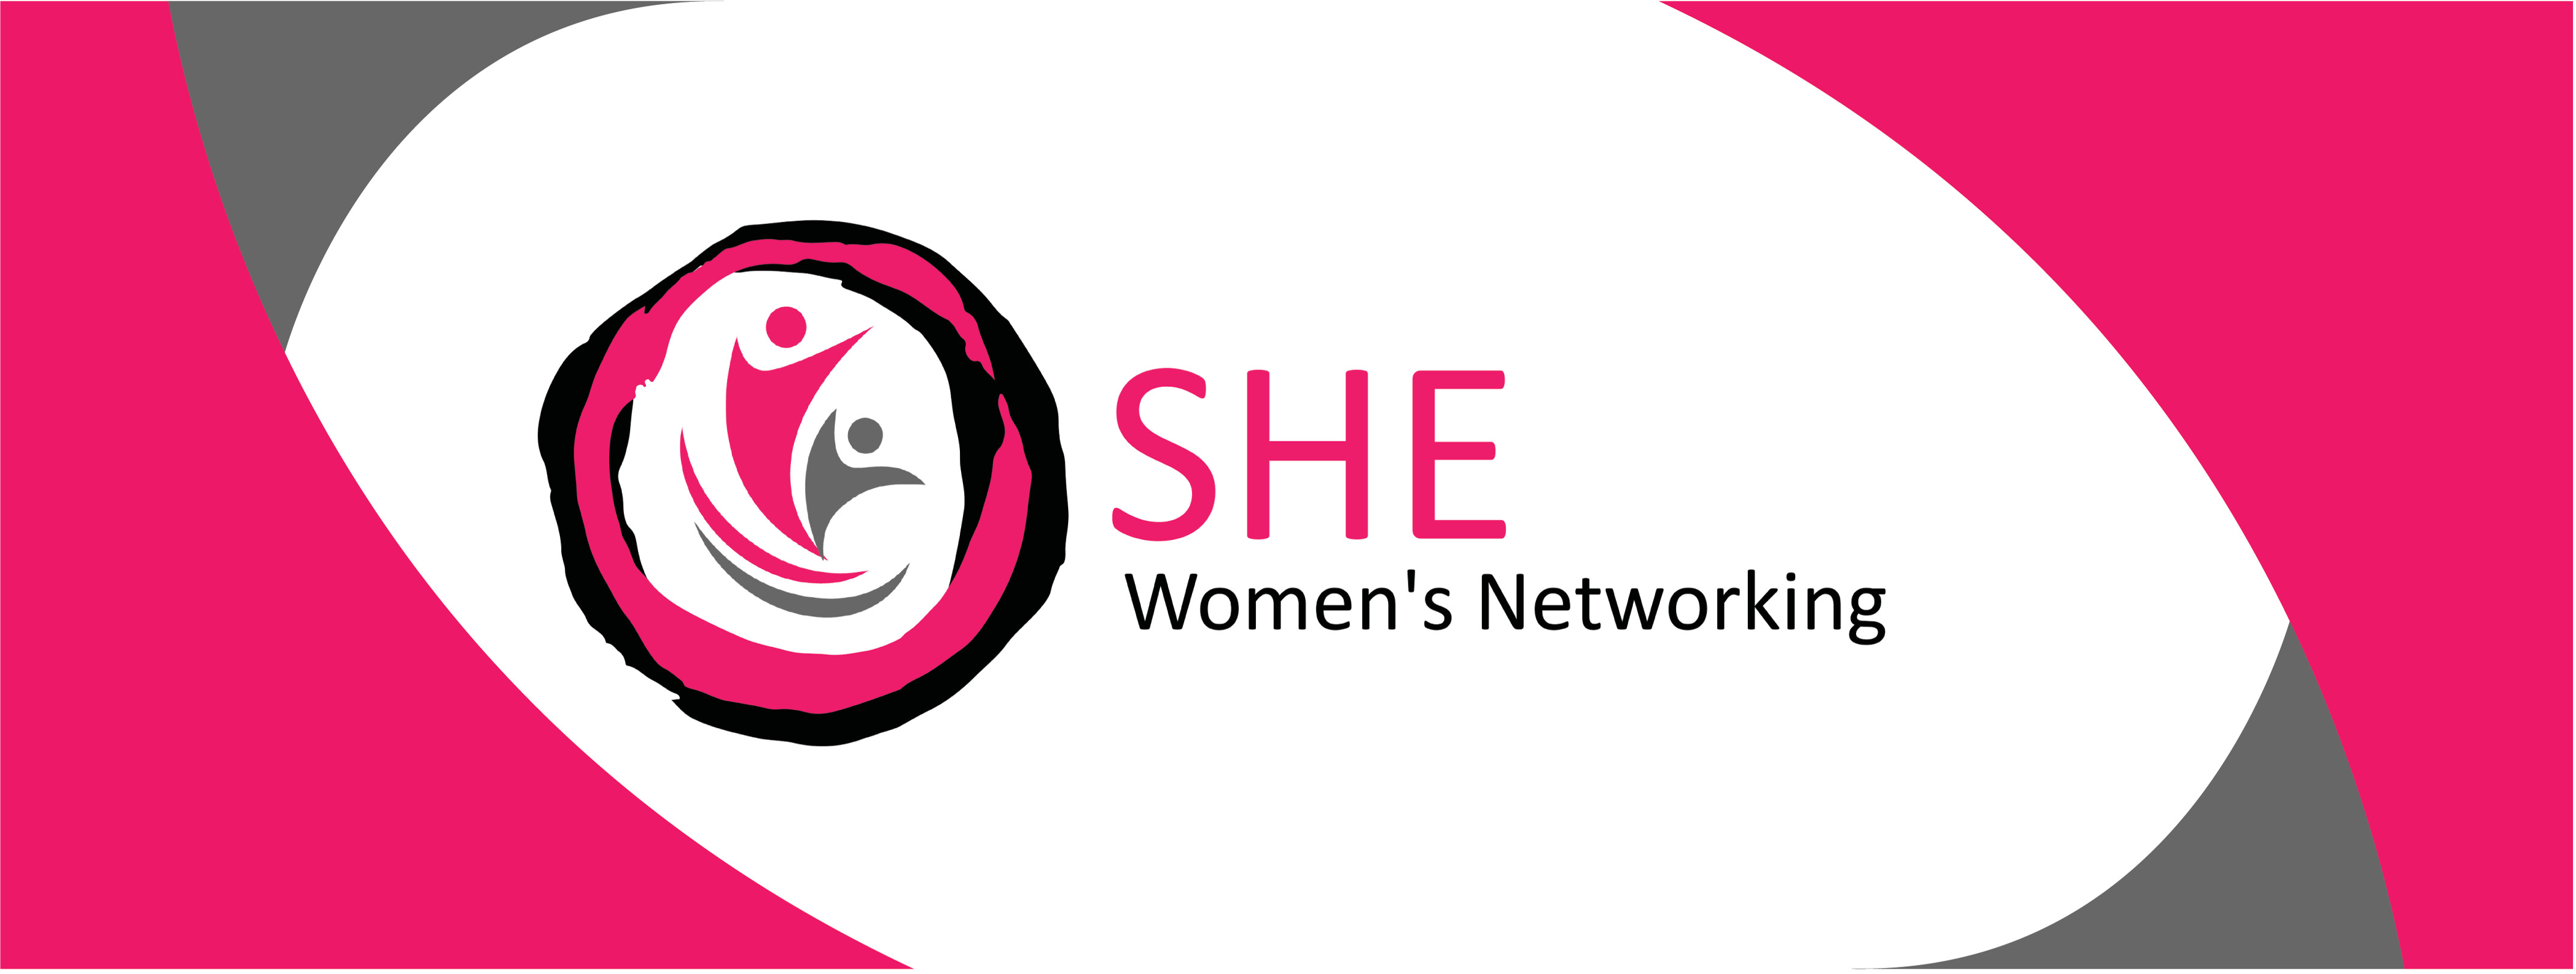 She Networking Header 21